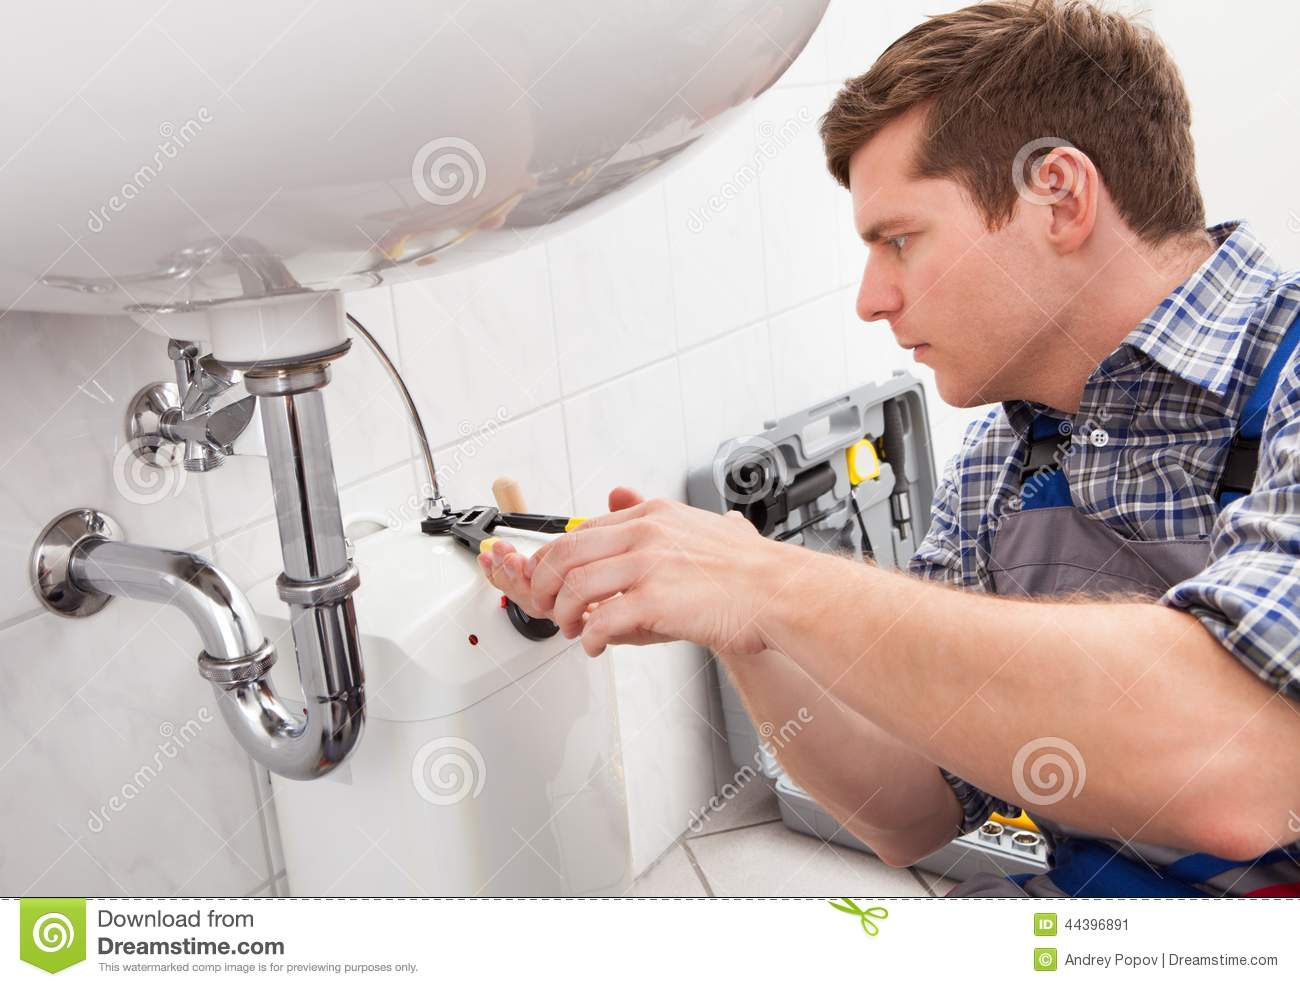 young-plumber-fixing-sink-bathroom-portrait-male-44396891.jpg